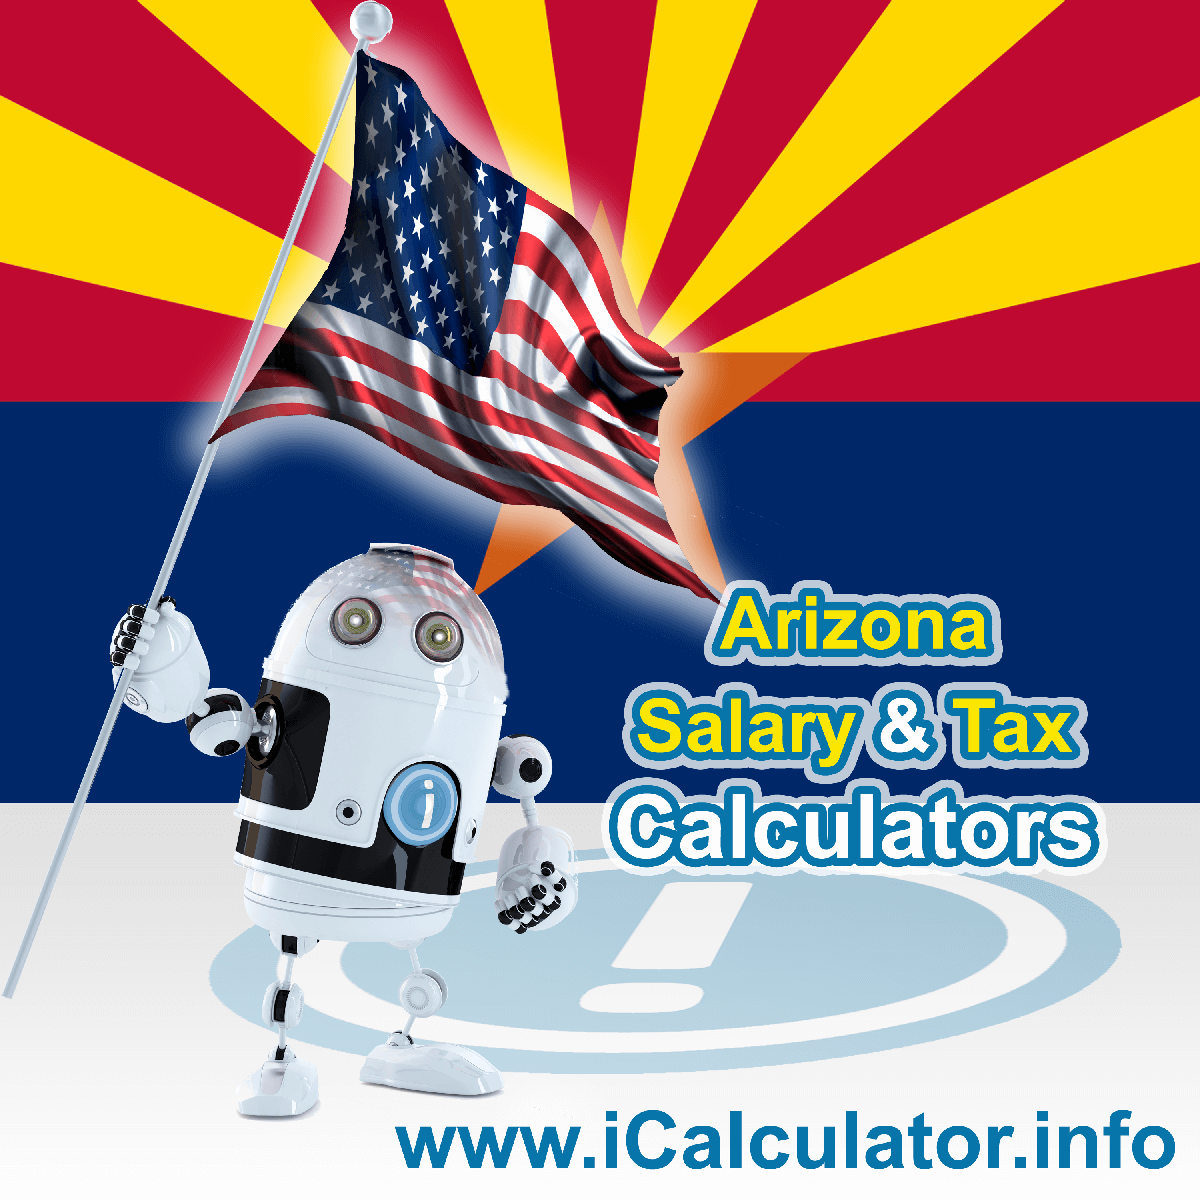 Arizona Salary Calculator 2021 | iCalculator™ | The Arizona Salary Calculator allows you to quickly calculate your salary after tax including Arizona State Tax, Federal State Tax, Medicare Deductions, Social Security, Capital Gains and other income tax and salary deductions complete with supporting Arizona state tax tables